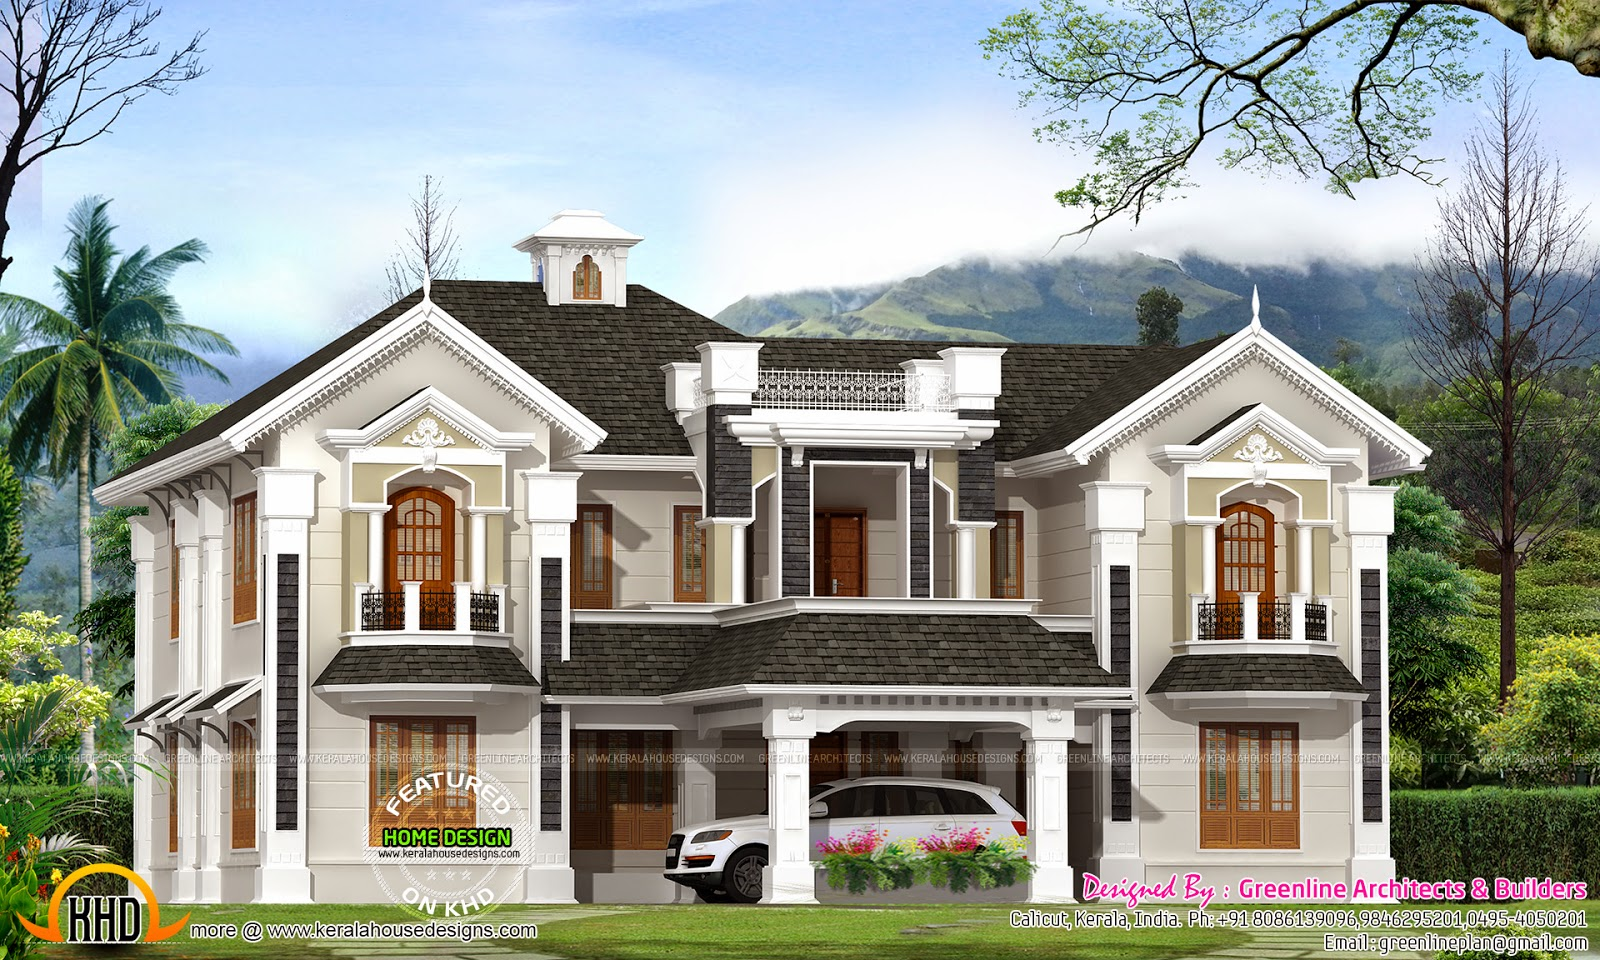 Colonial style house in kerala kerala home design and for House plans colonial style homes